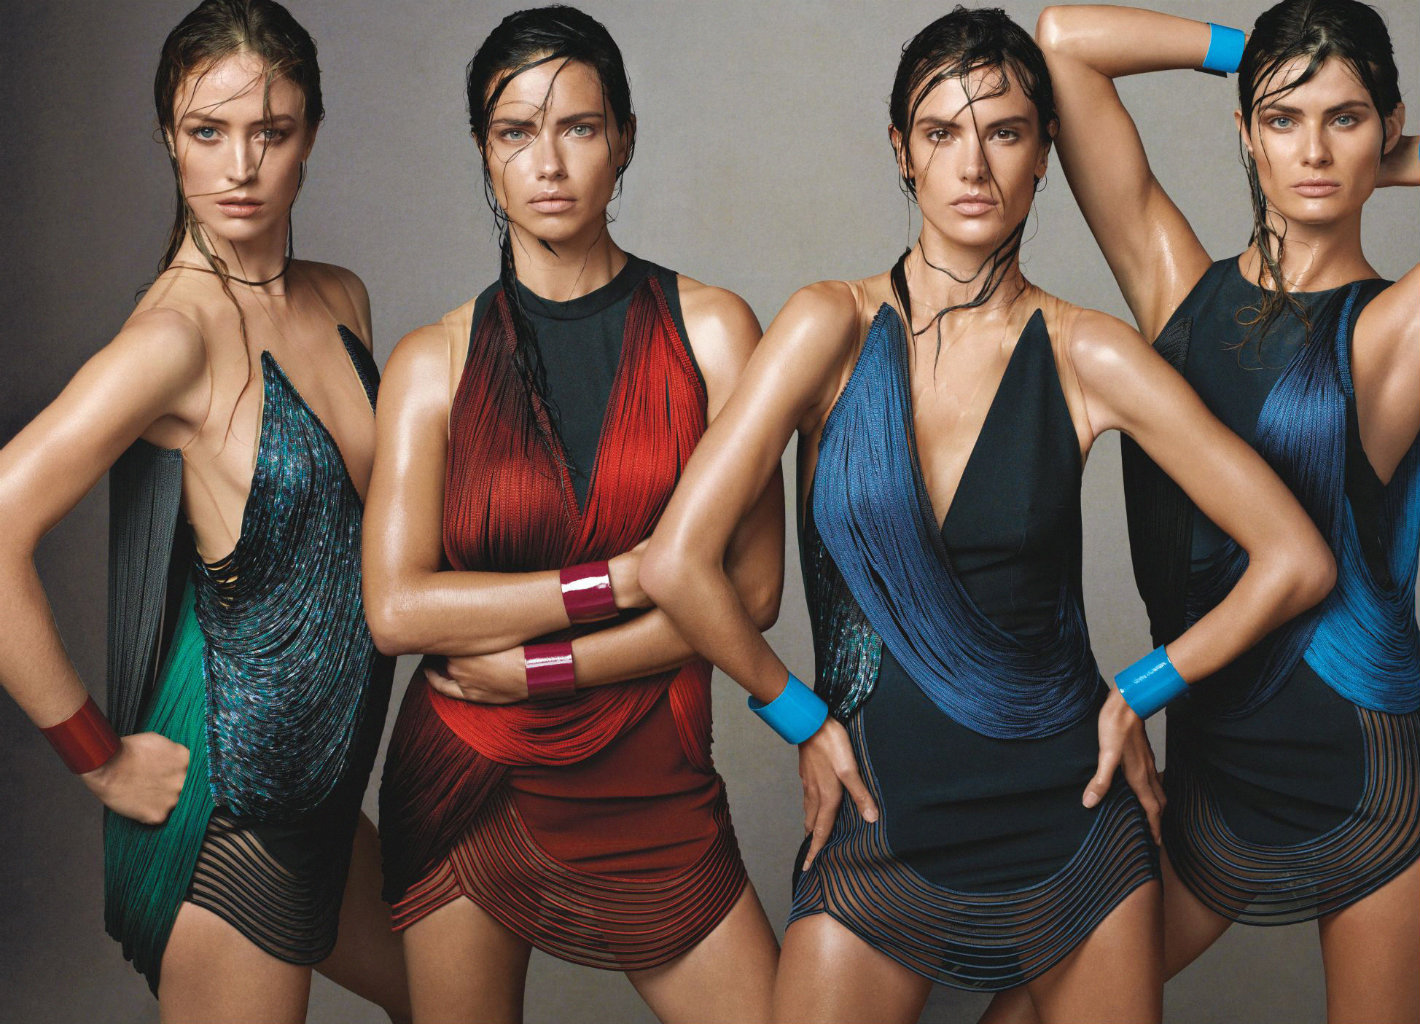 raquel zimmermann adriana lima alessandra ambrosio isabeli fontana by steven meisel for vogue us june 2014